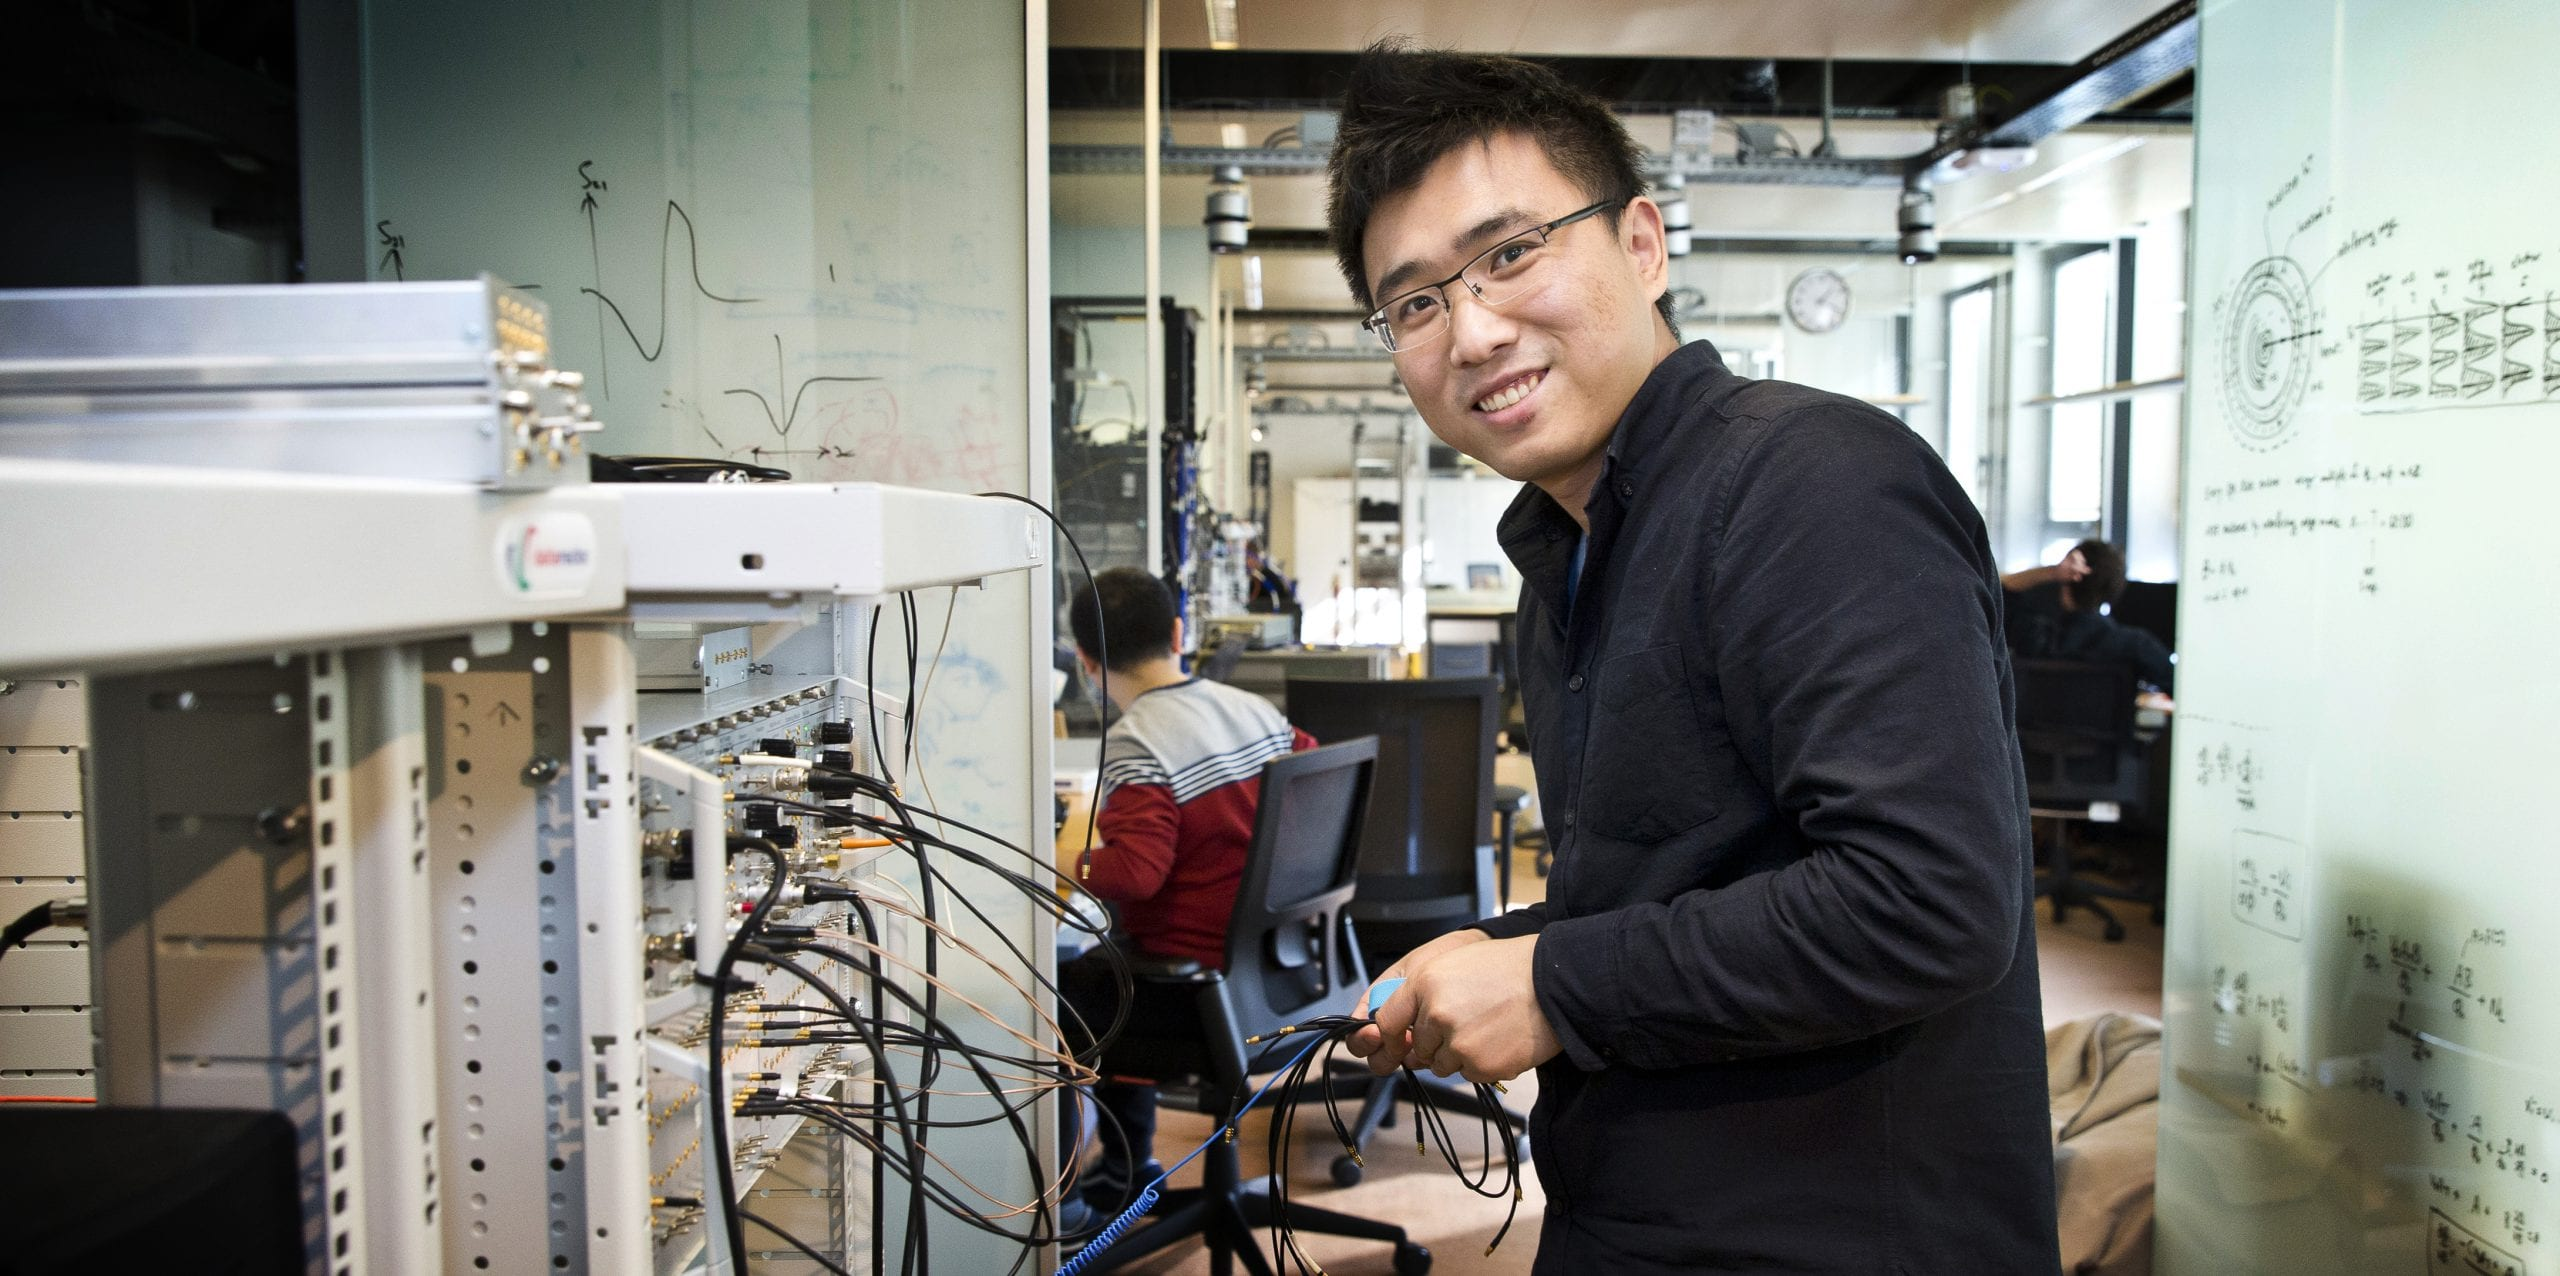 Researcher Hao Zhang at work  – Guus Schoonewille